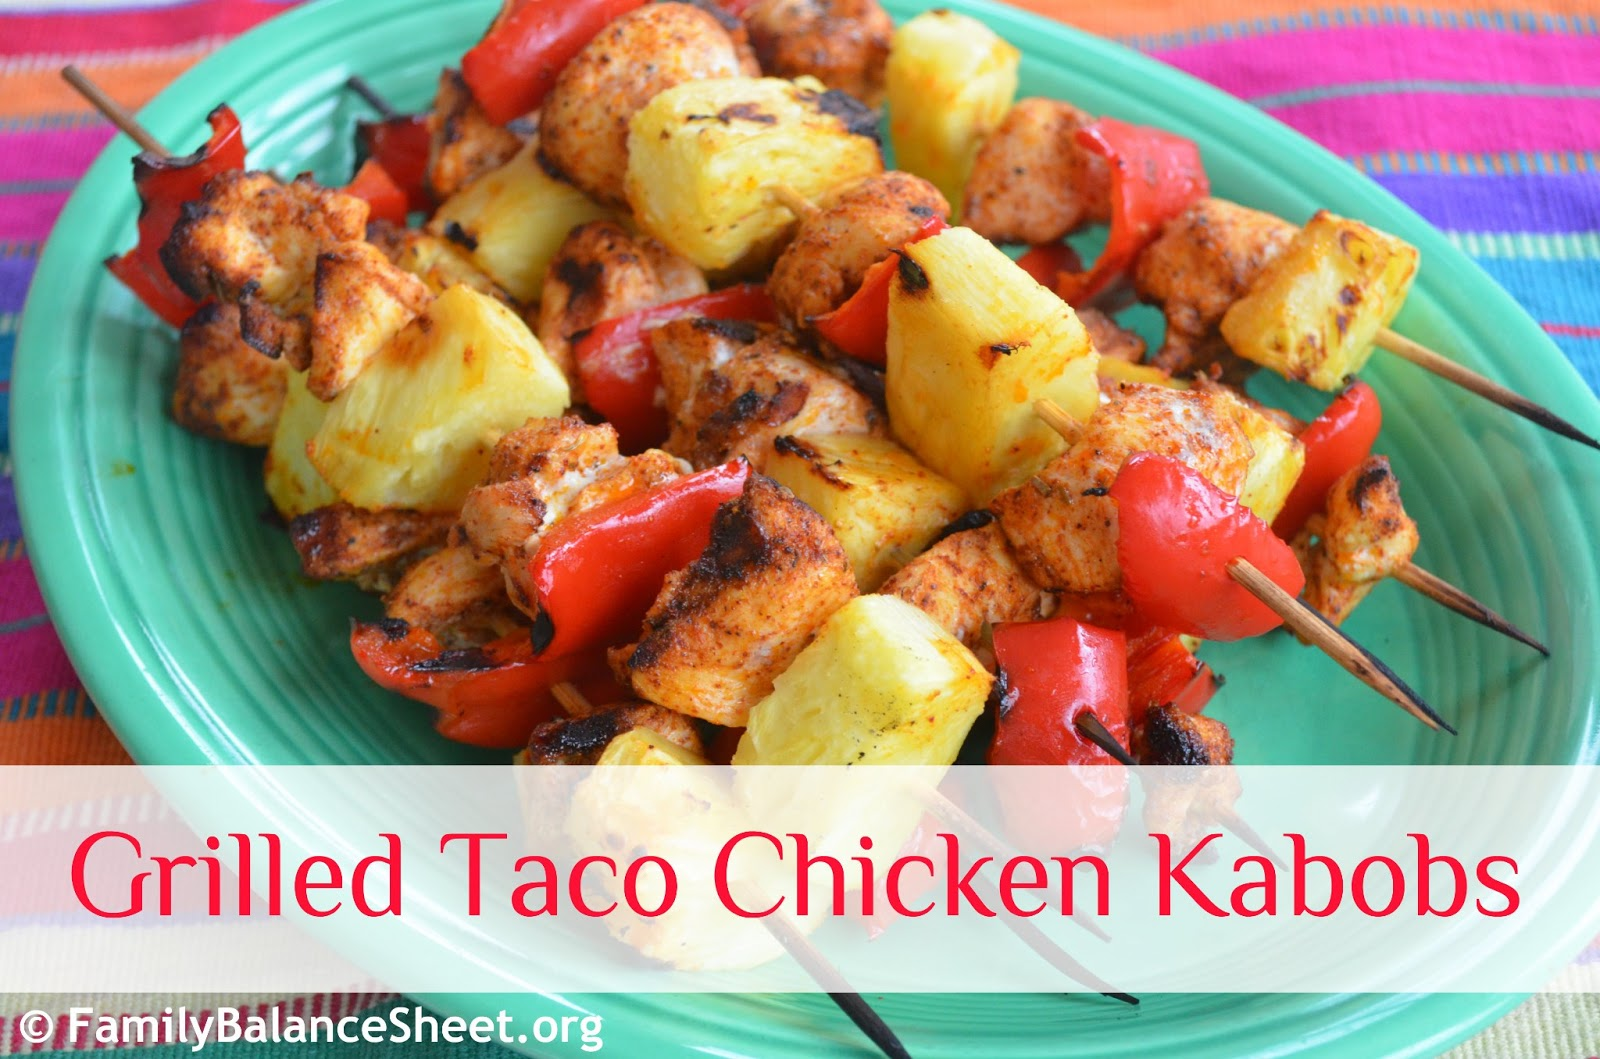 Grilled Taco Chicken Kabobs